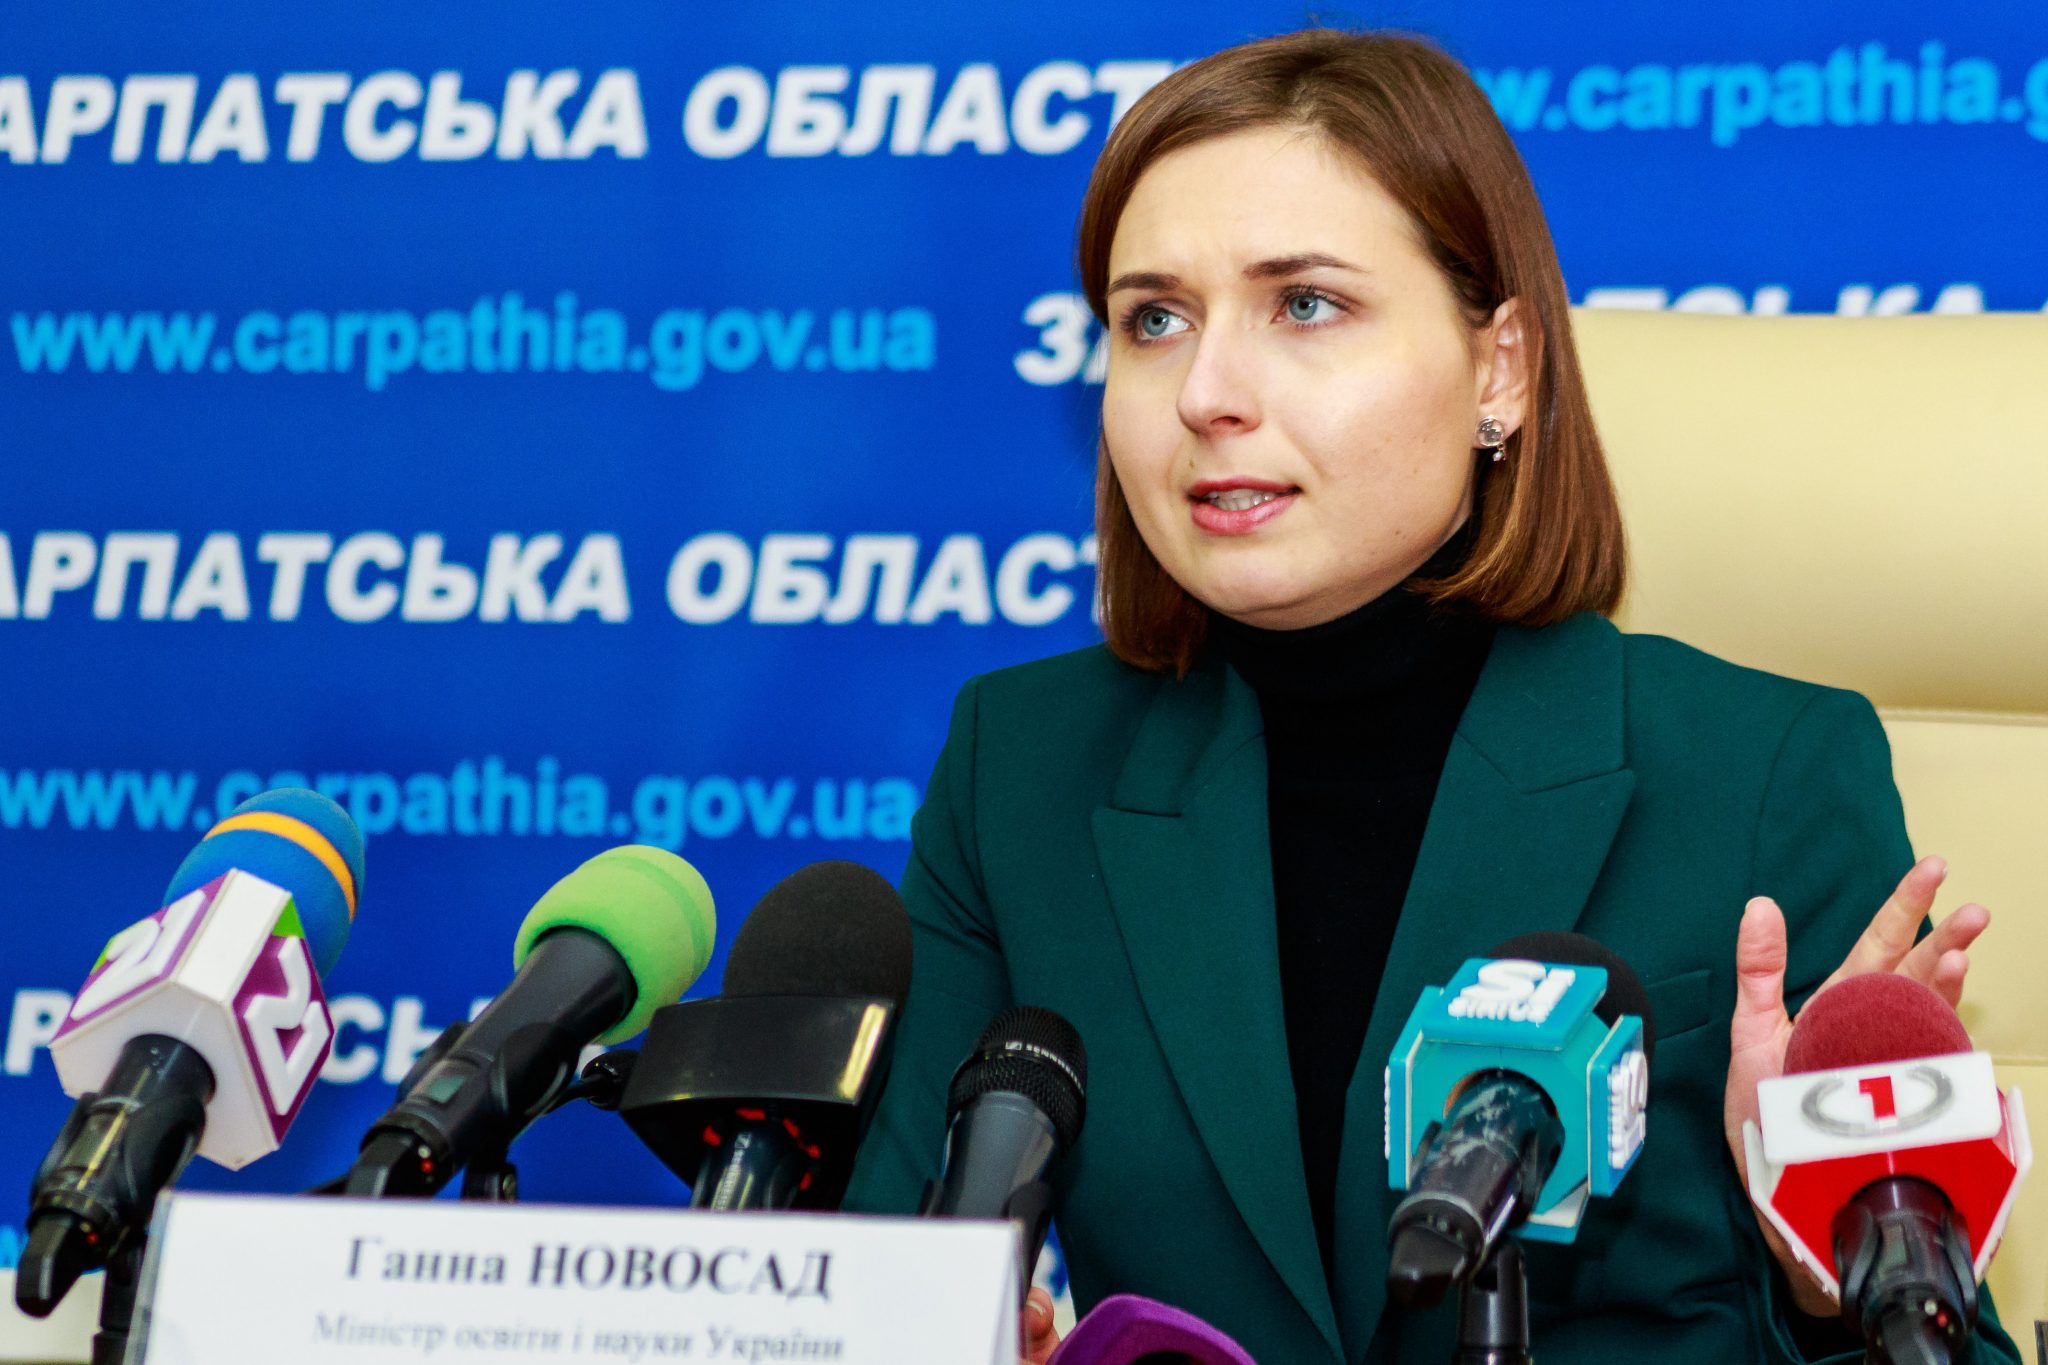 Ukraine's Education Minister: Hungary's Proposals Regarding Minorities' Language Education 'Not Practical' post's picture